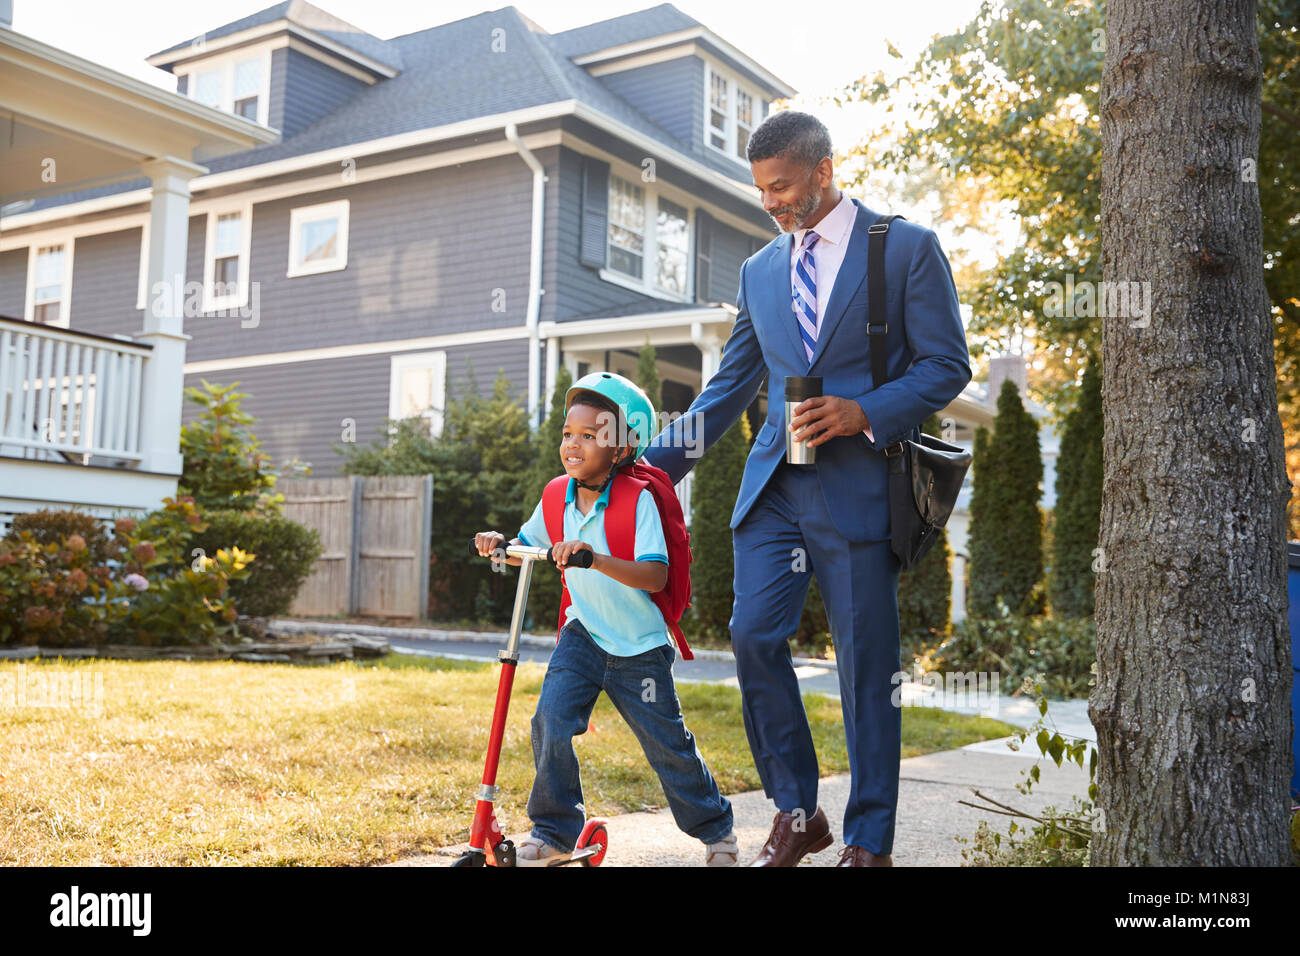 Businessman Father Walking Son On Scooter To School - Stock Image